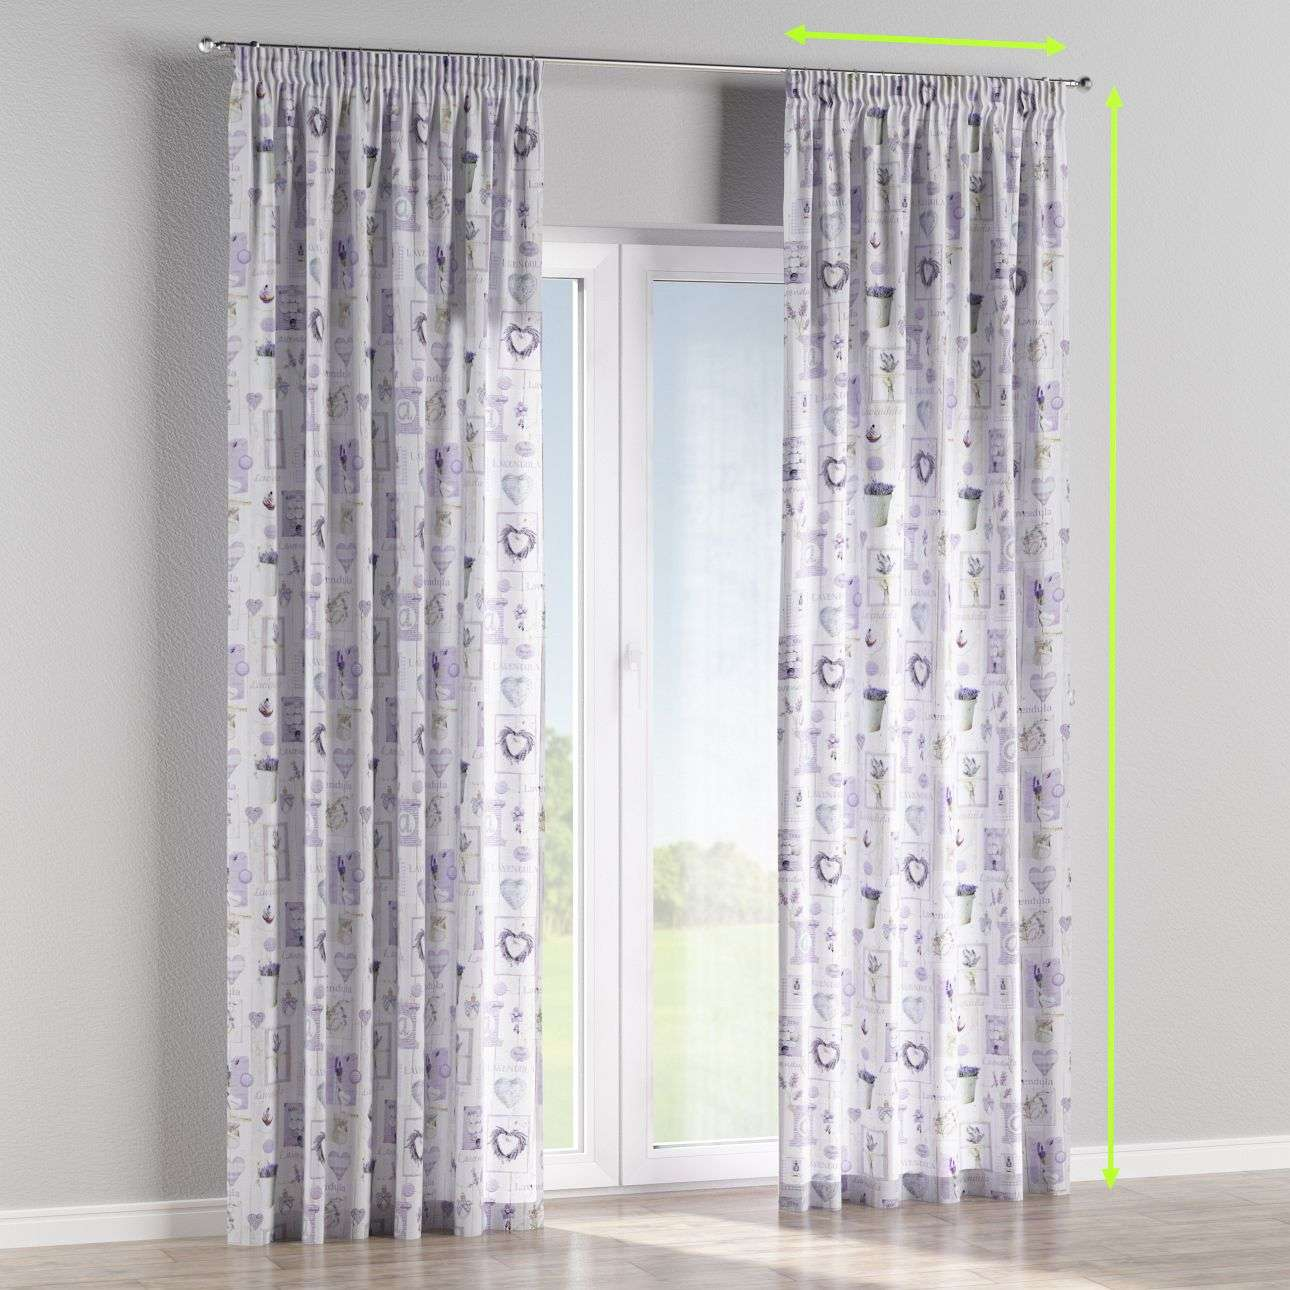 Pencil pleat curtains in collection Ashley, fabric: 140-18